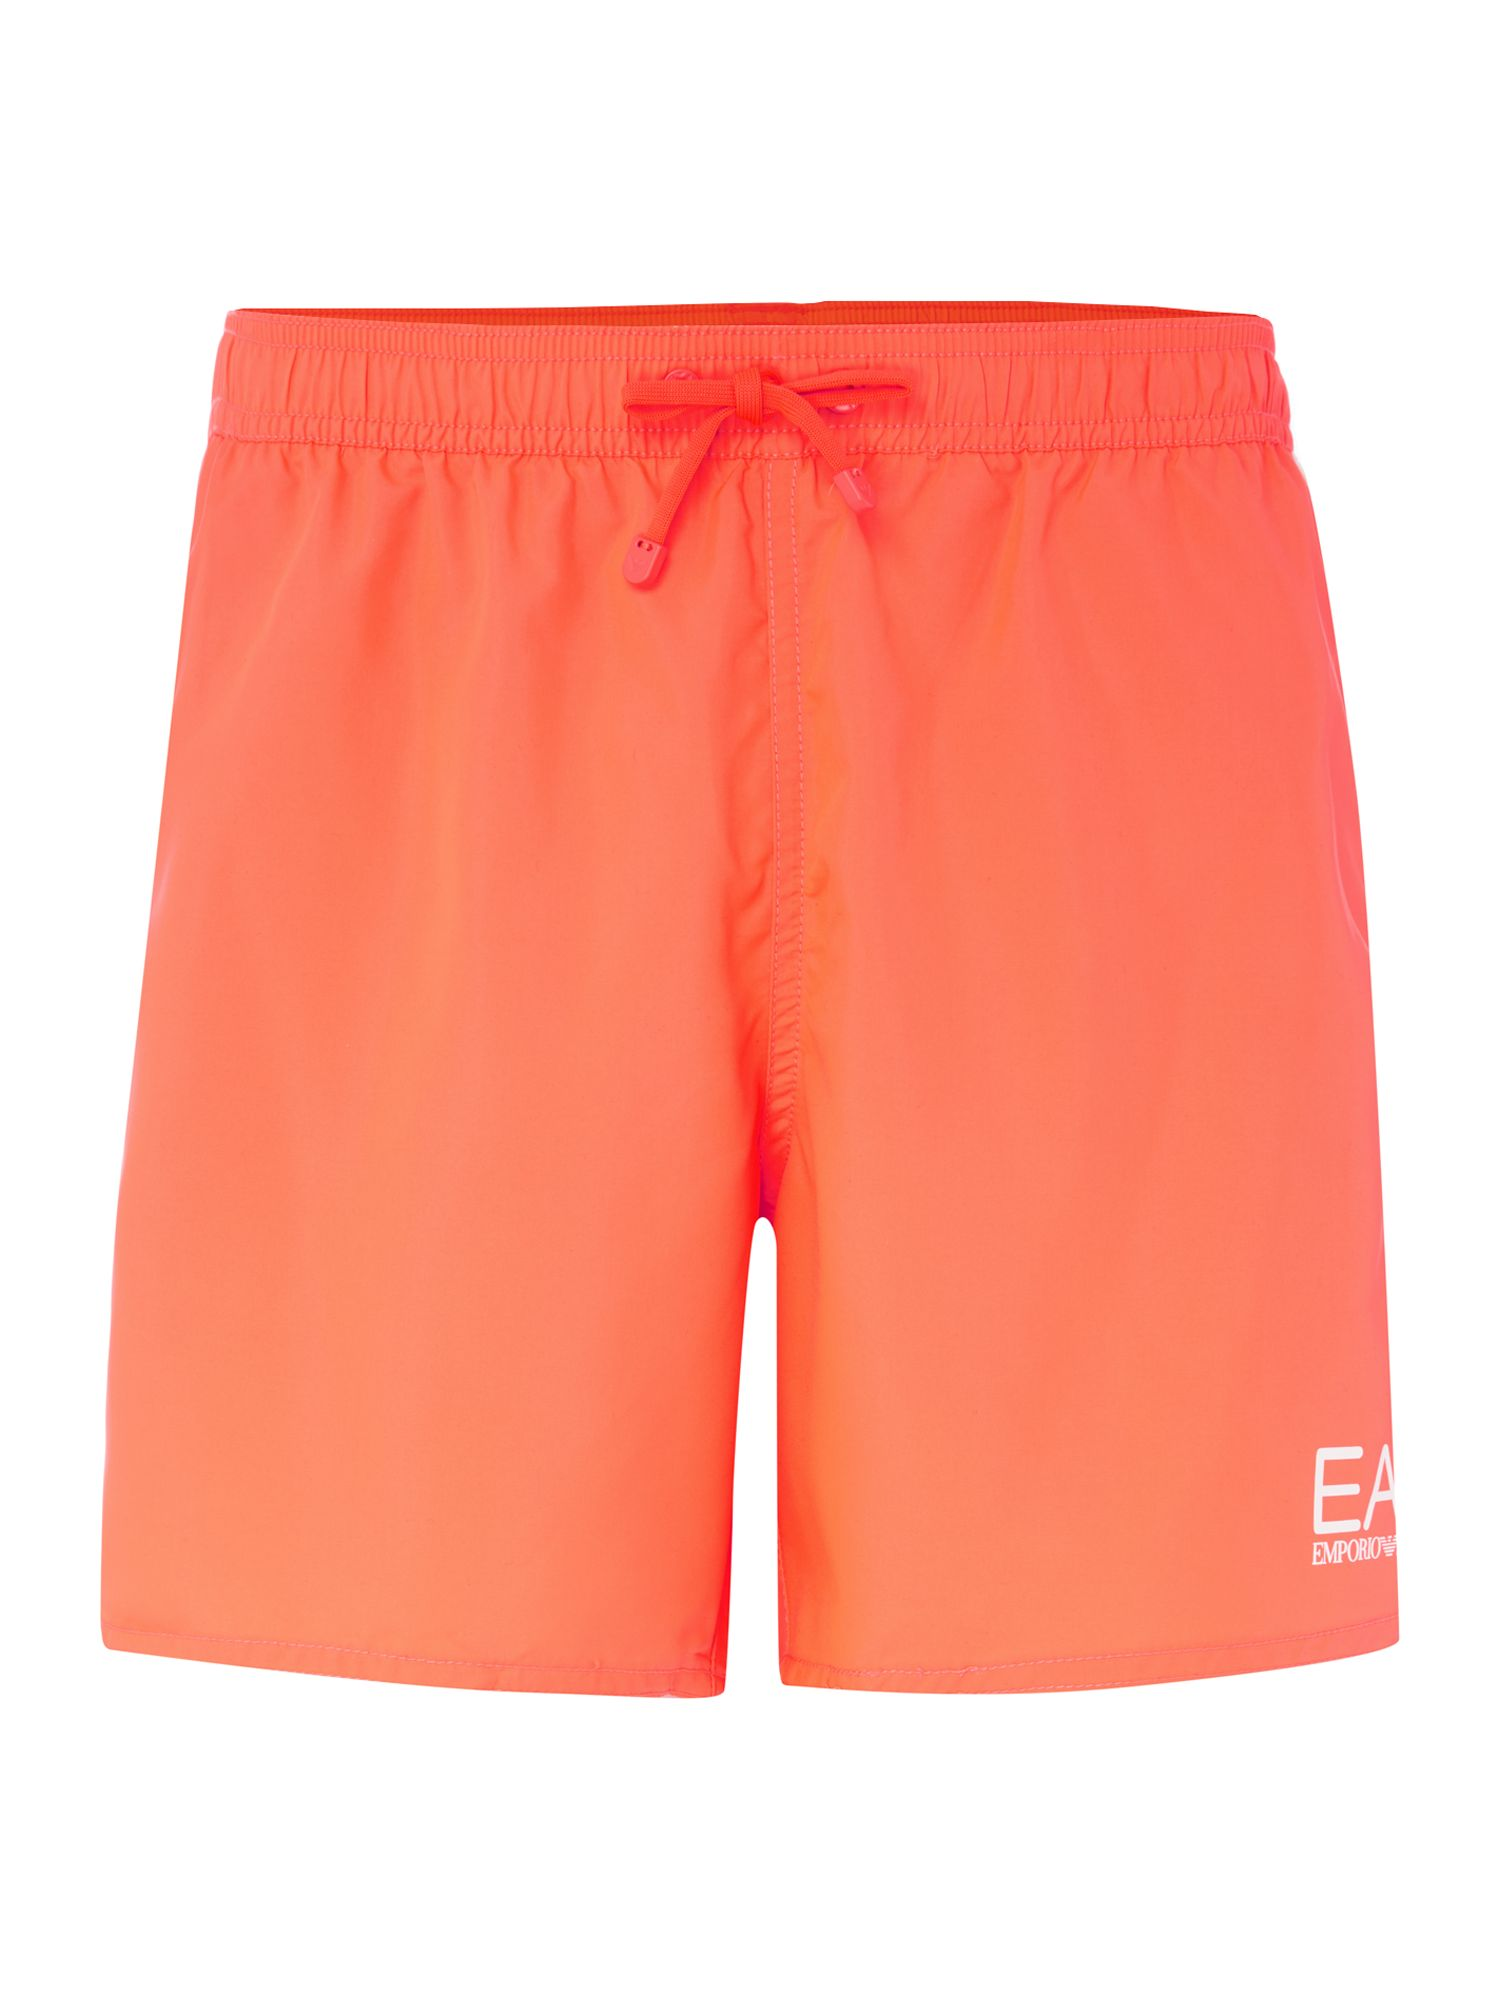 Men's EA7 Plain Logo Swim Shorts, Pink